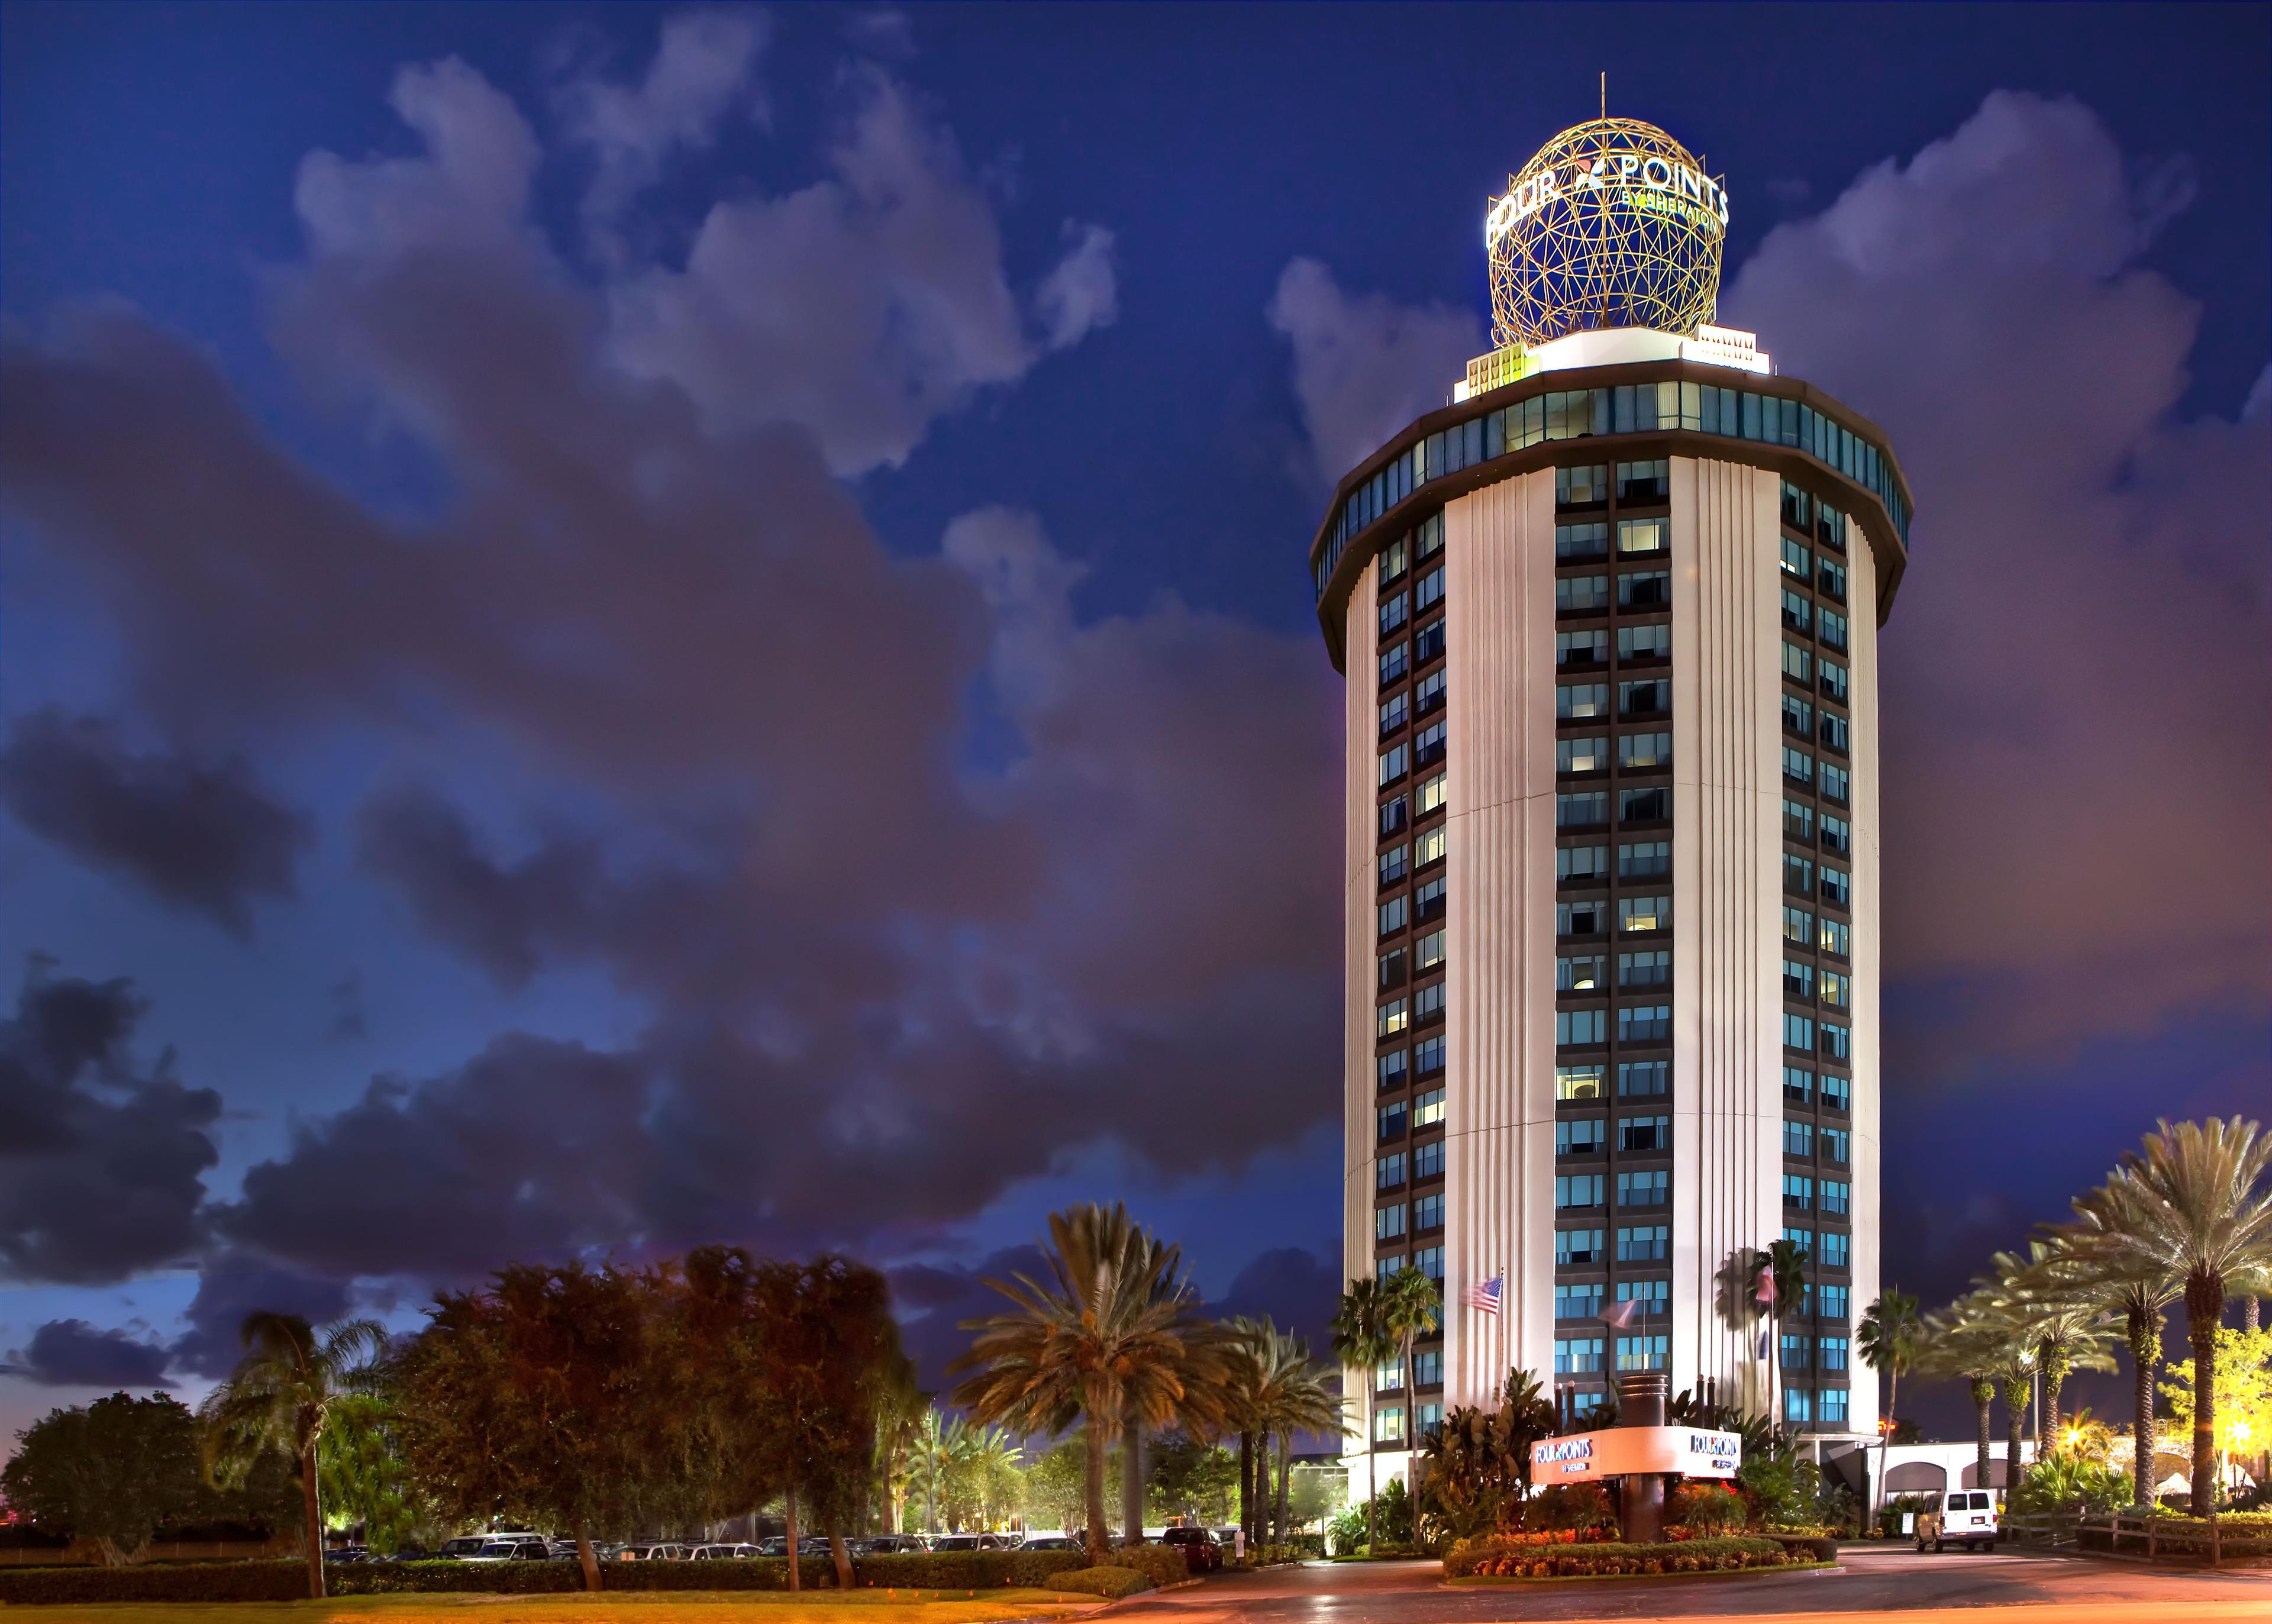 Hotels And Motels On International Drive In Orlando Florida